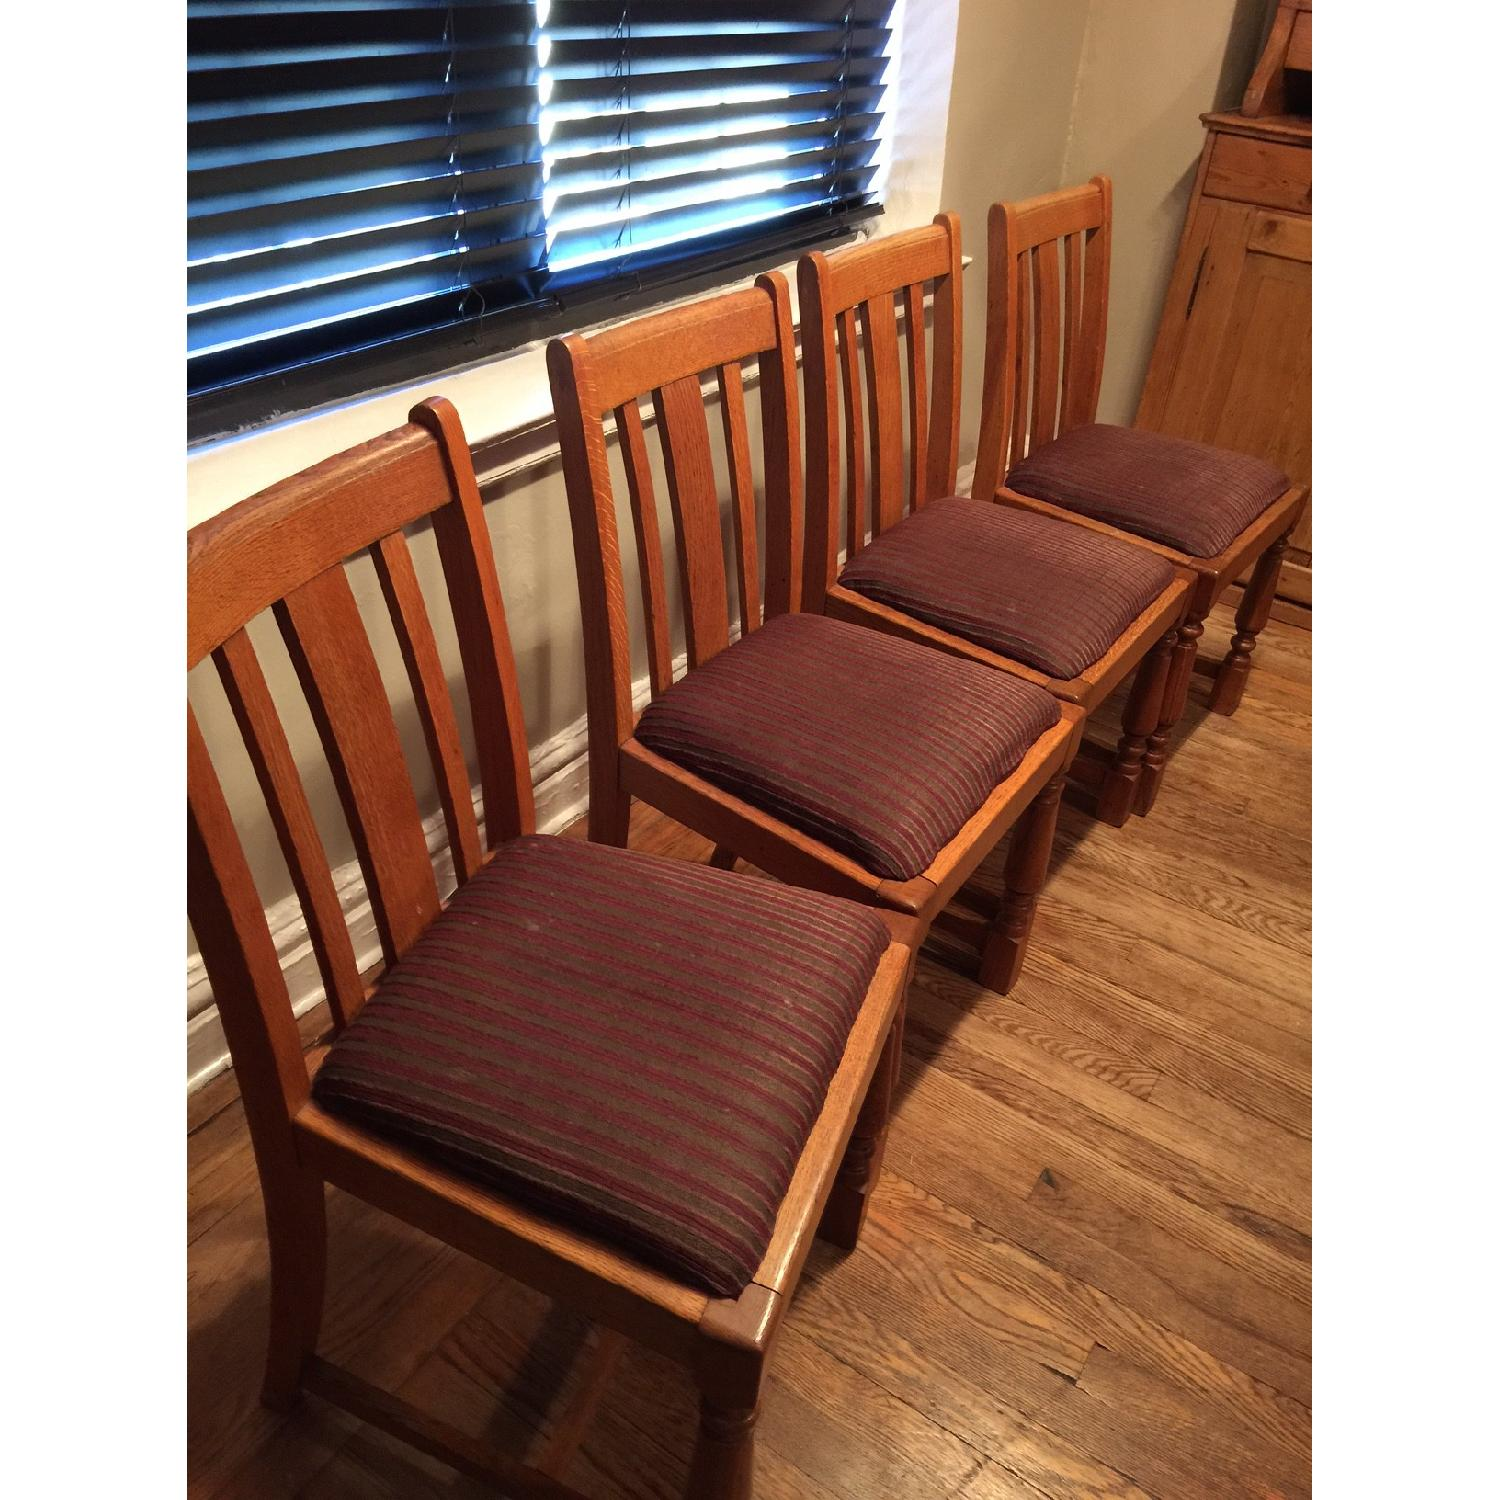 Antique European Tiger Oak Dining Chairs - image-2